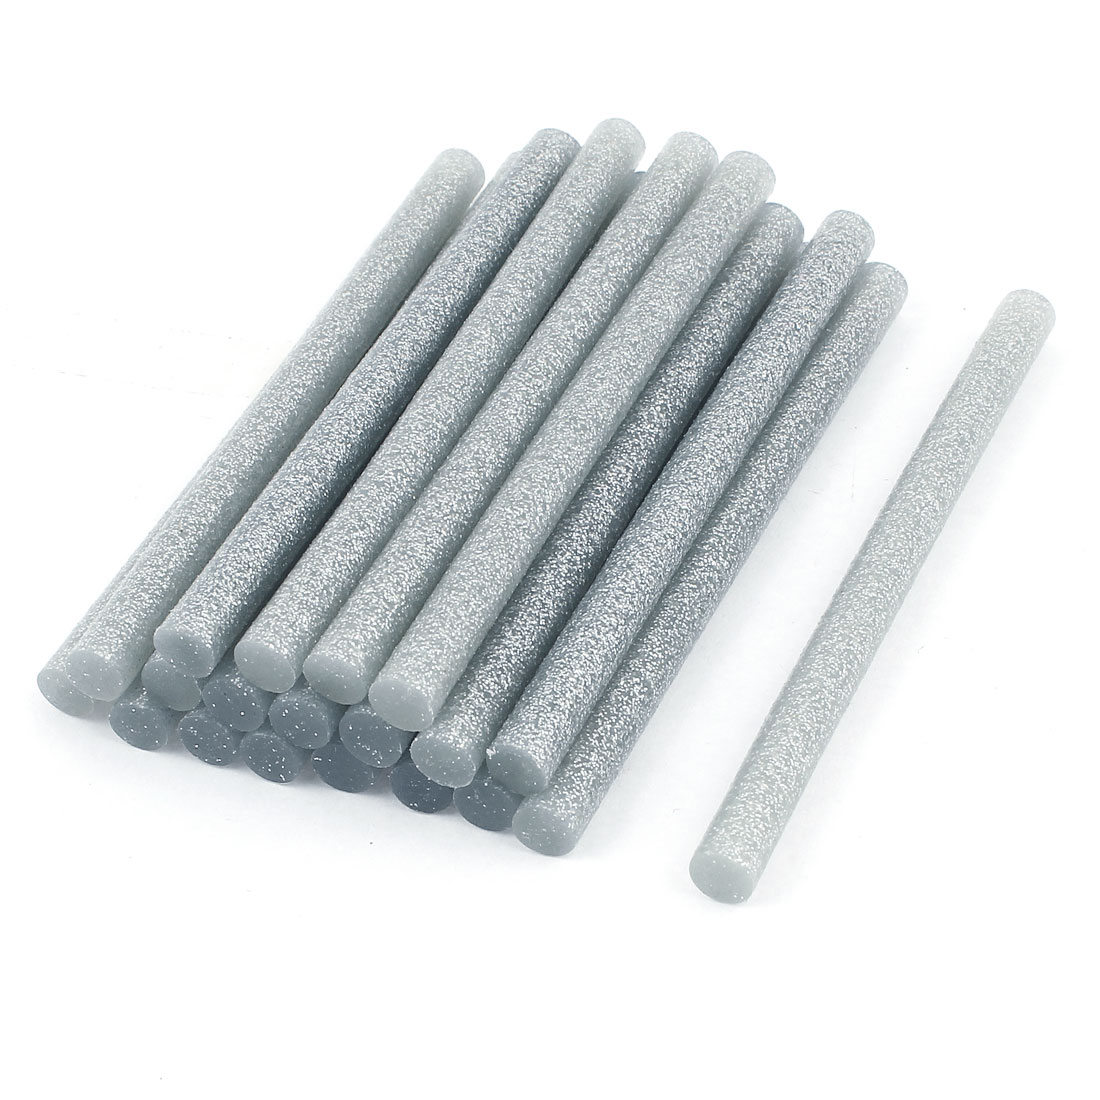 20 Pcs Silver Tone Glitter Hot Melt Glue Gun Adhesive Sticks 7x100mm